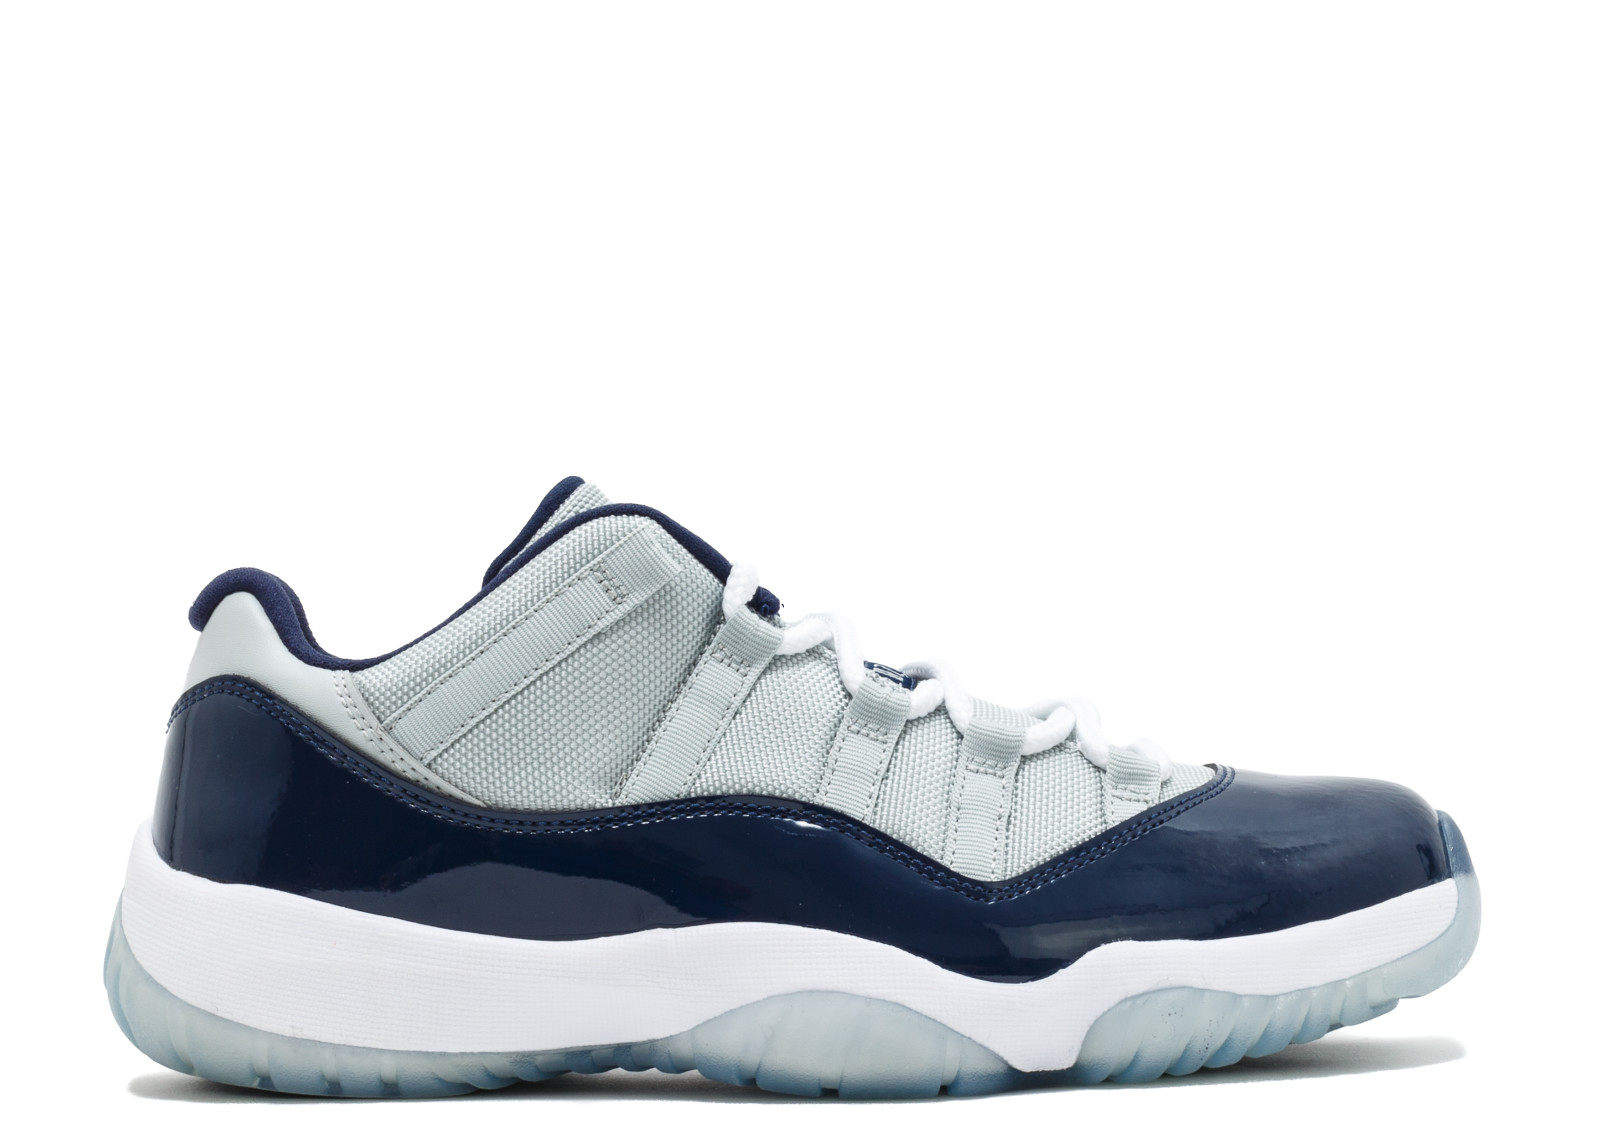 buy popular e4376 00706 Air Jordan 11 Retro Low Georgetown [aj11-15] - $109.34 ...